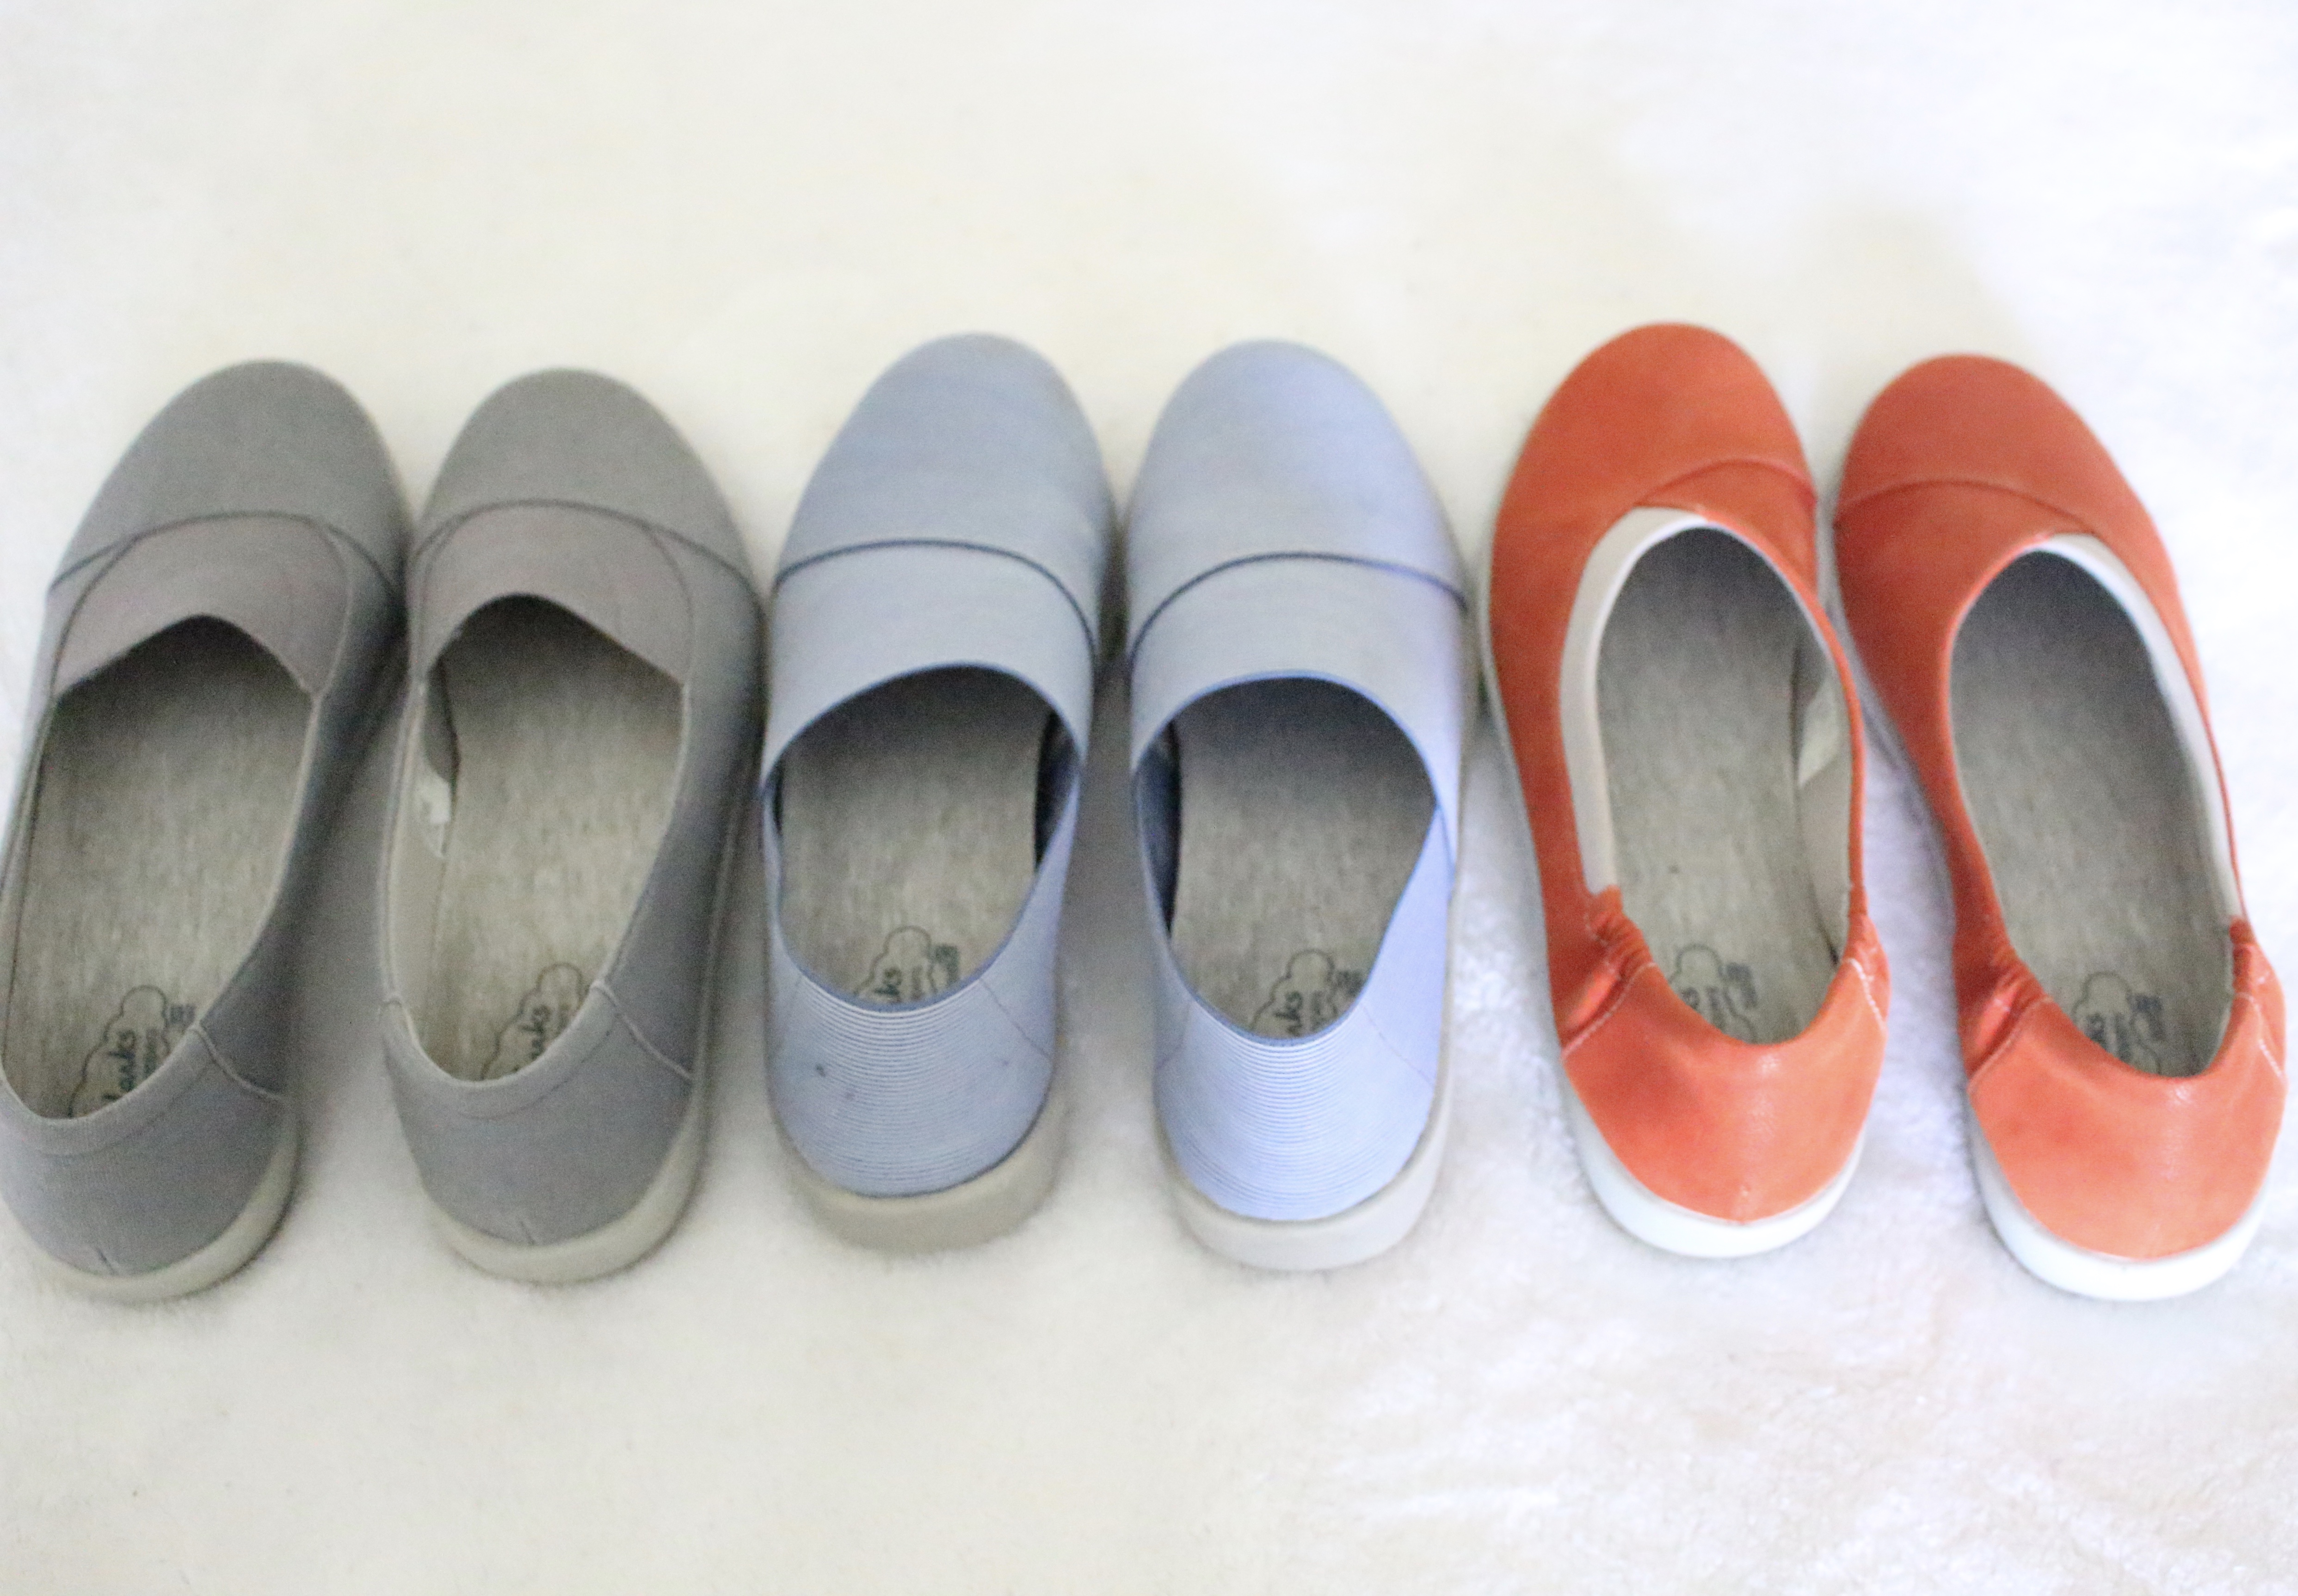 Clarks Cloud Steppers are versatile shoes by www.mylifefromhome.com